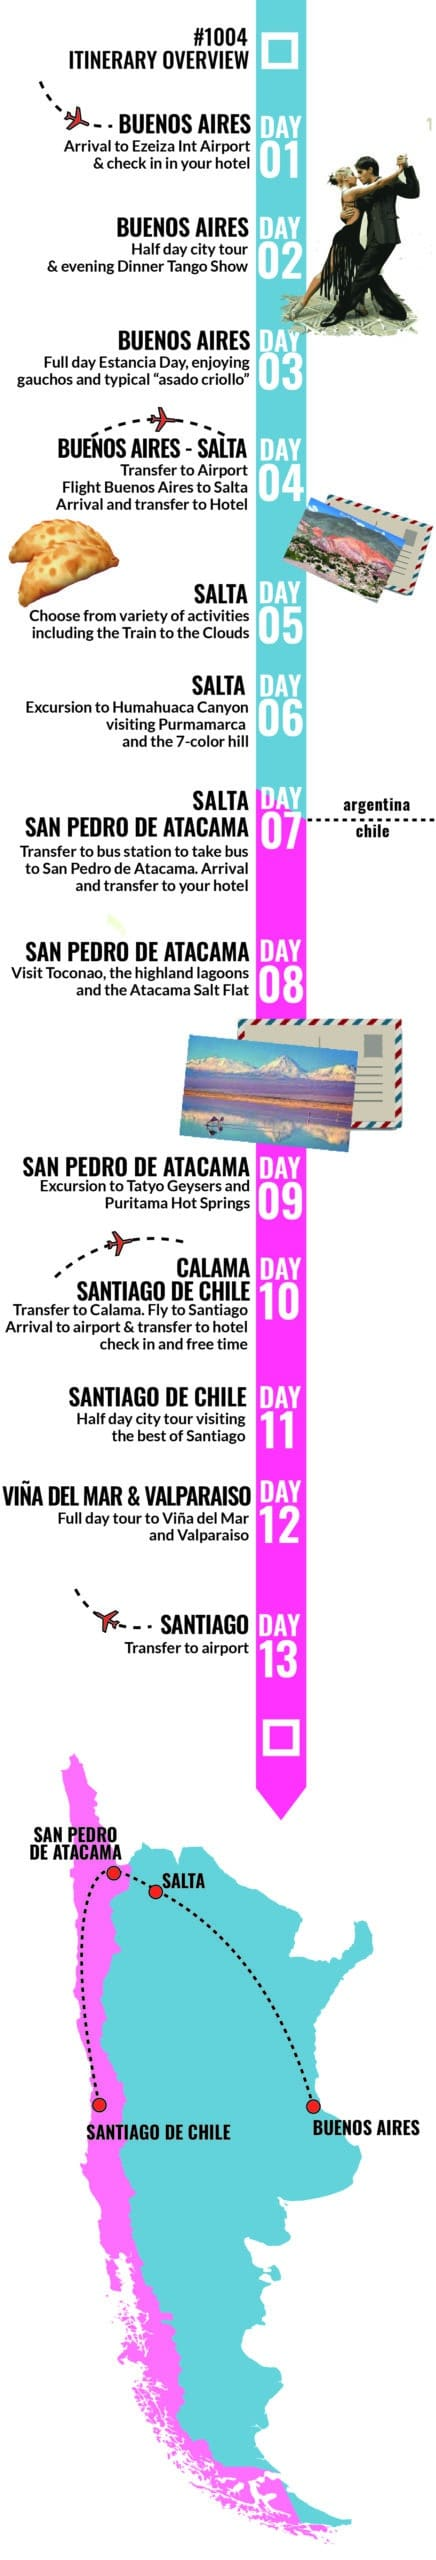 Buenos Aires, Salta, Humahuaca Canyon, Atacama Desert, Santiago - Argentina and Chile in 12 nights - by RipioTurismo Incoming Tour Operator Argentina and Chile